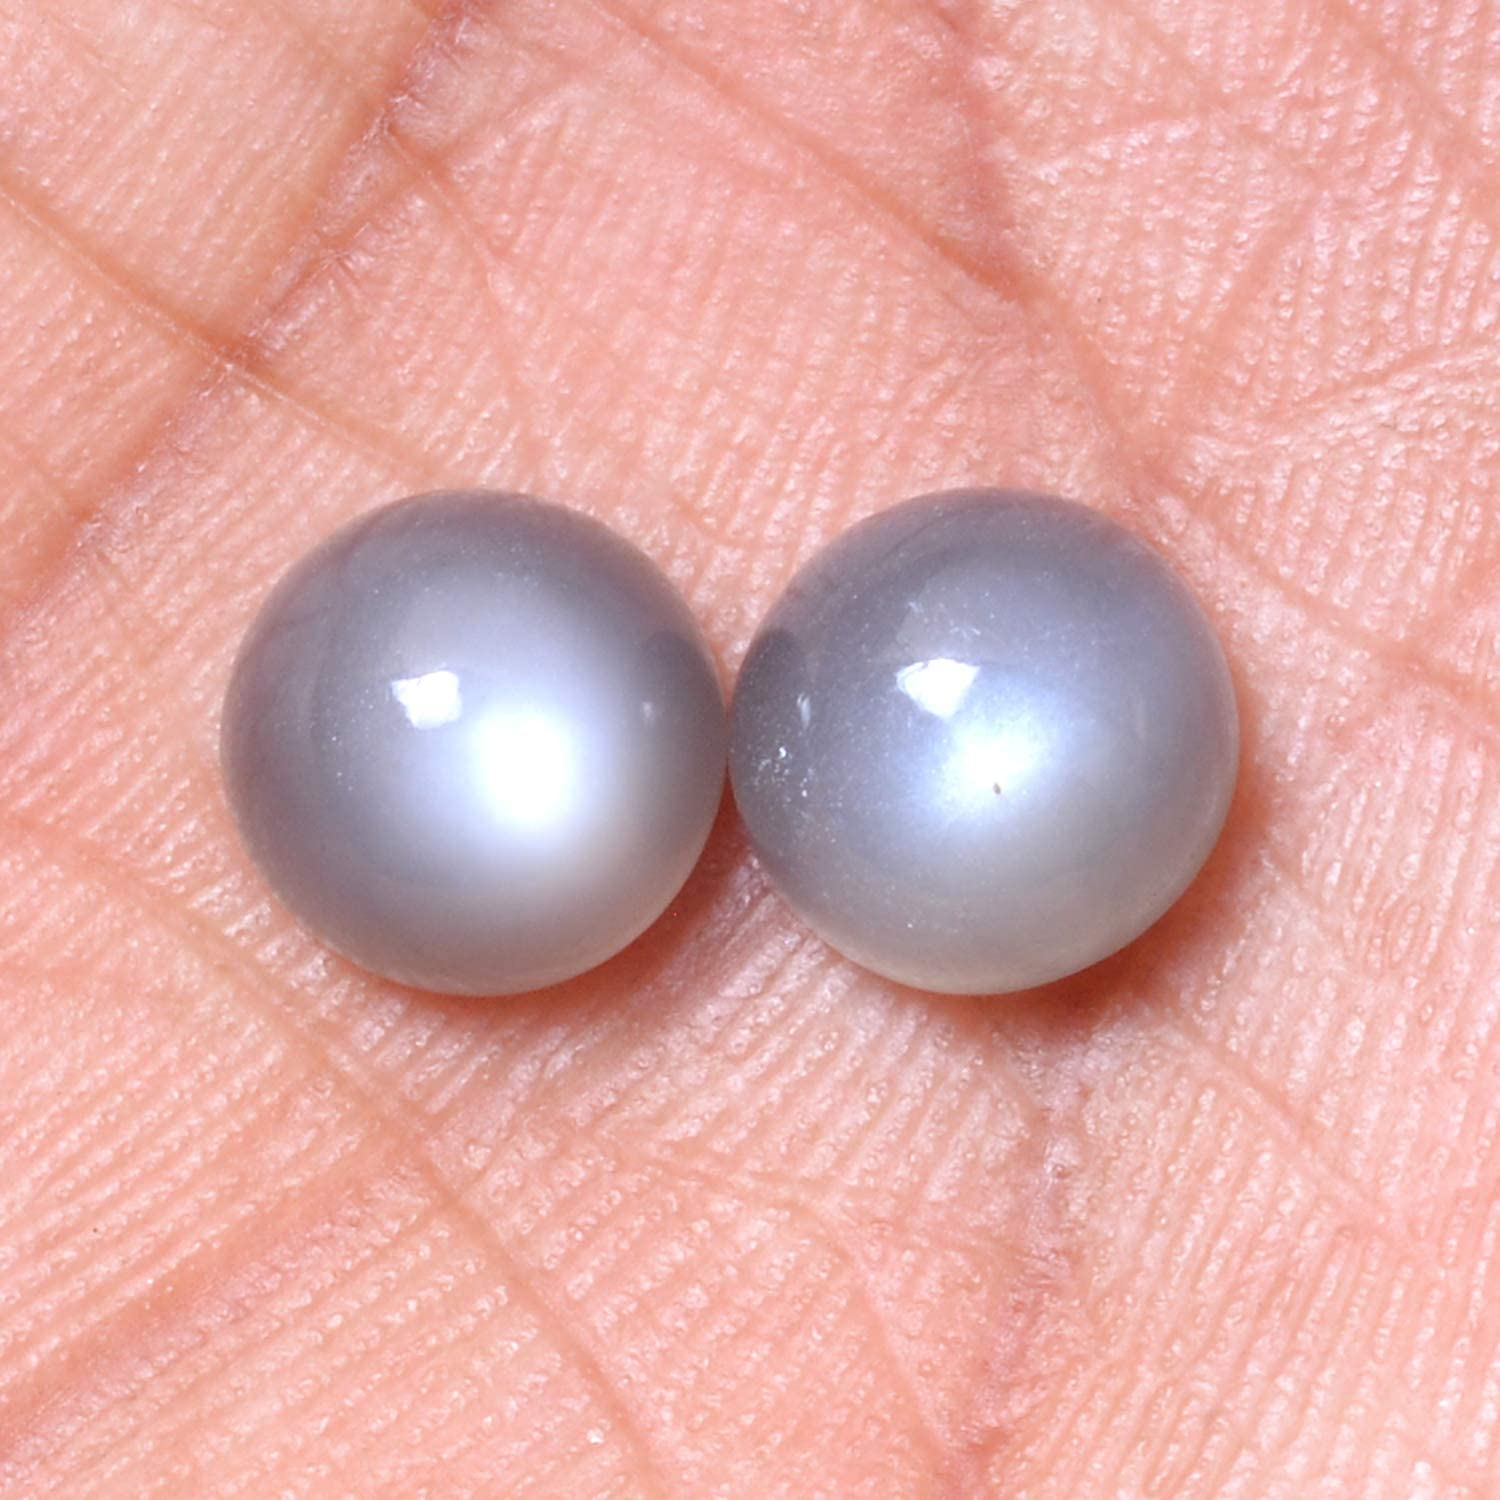 8-10 MM Size Best High Quality Gemstone For Making Jewelry. Natural Siloni Moonstone Gemstone Smooth Round Shape Cabochon